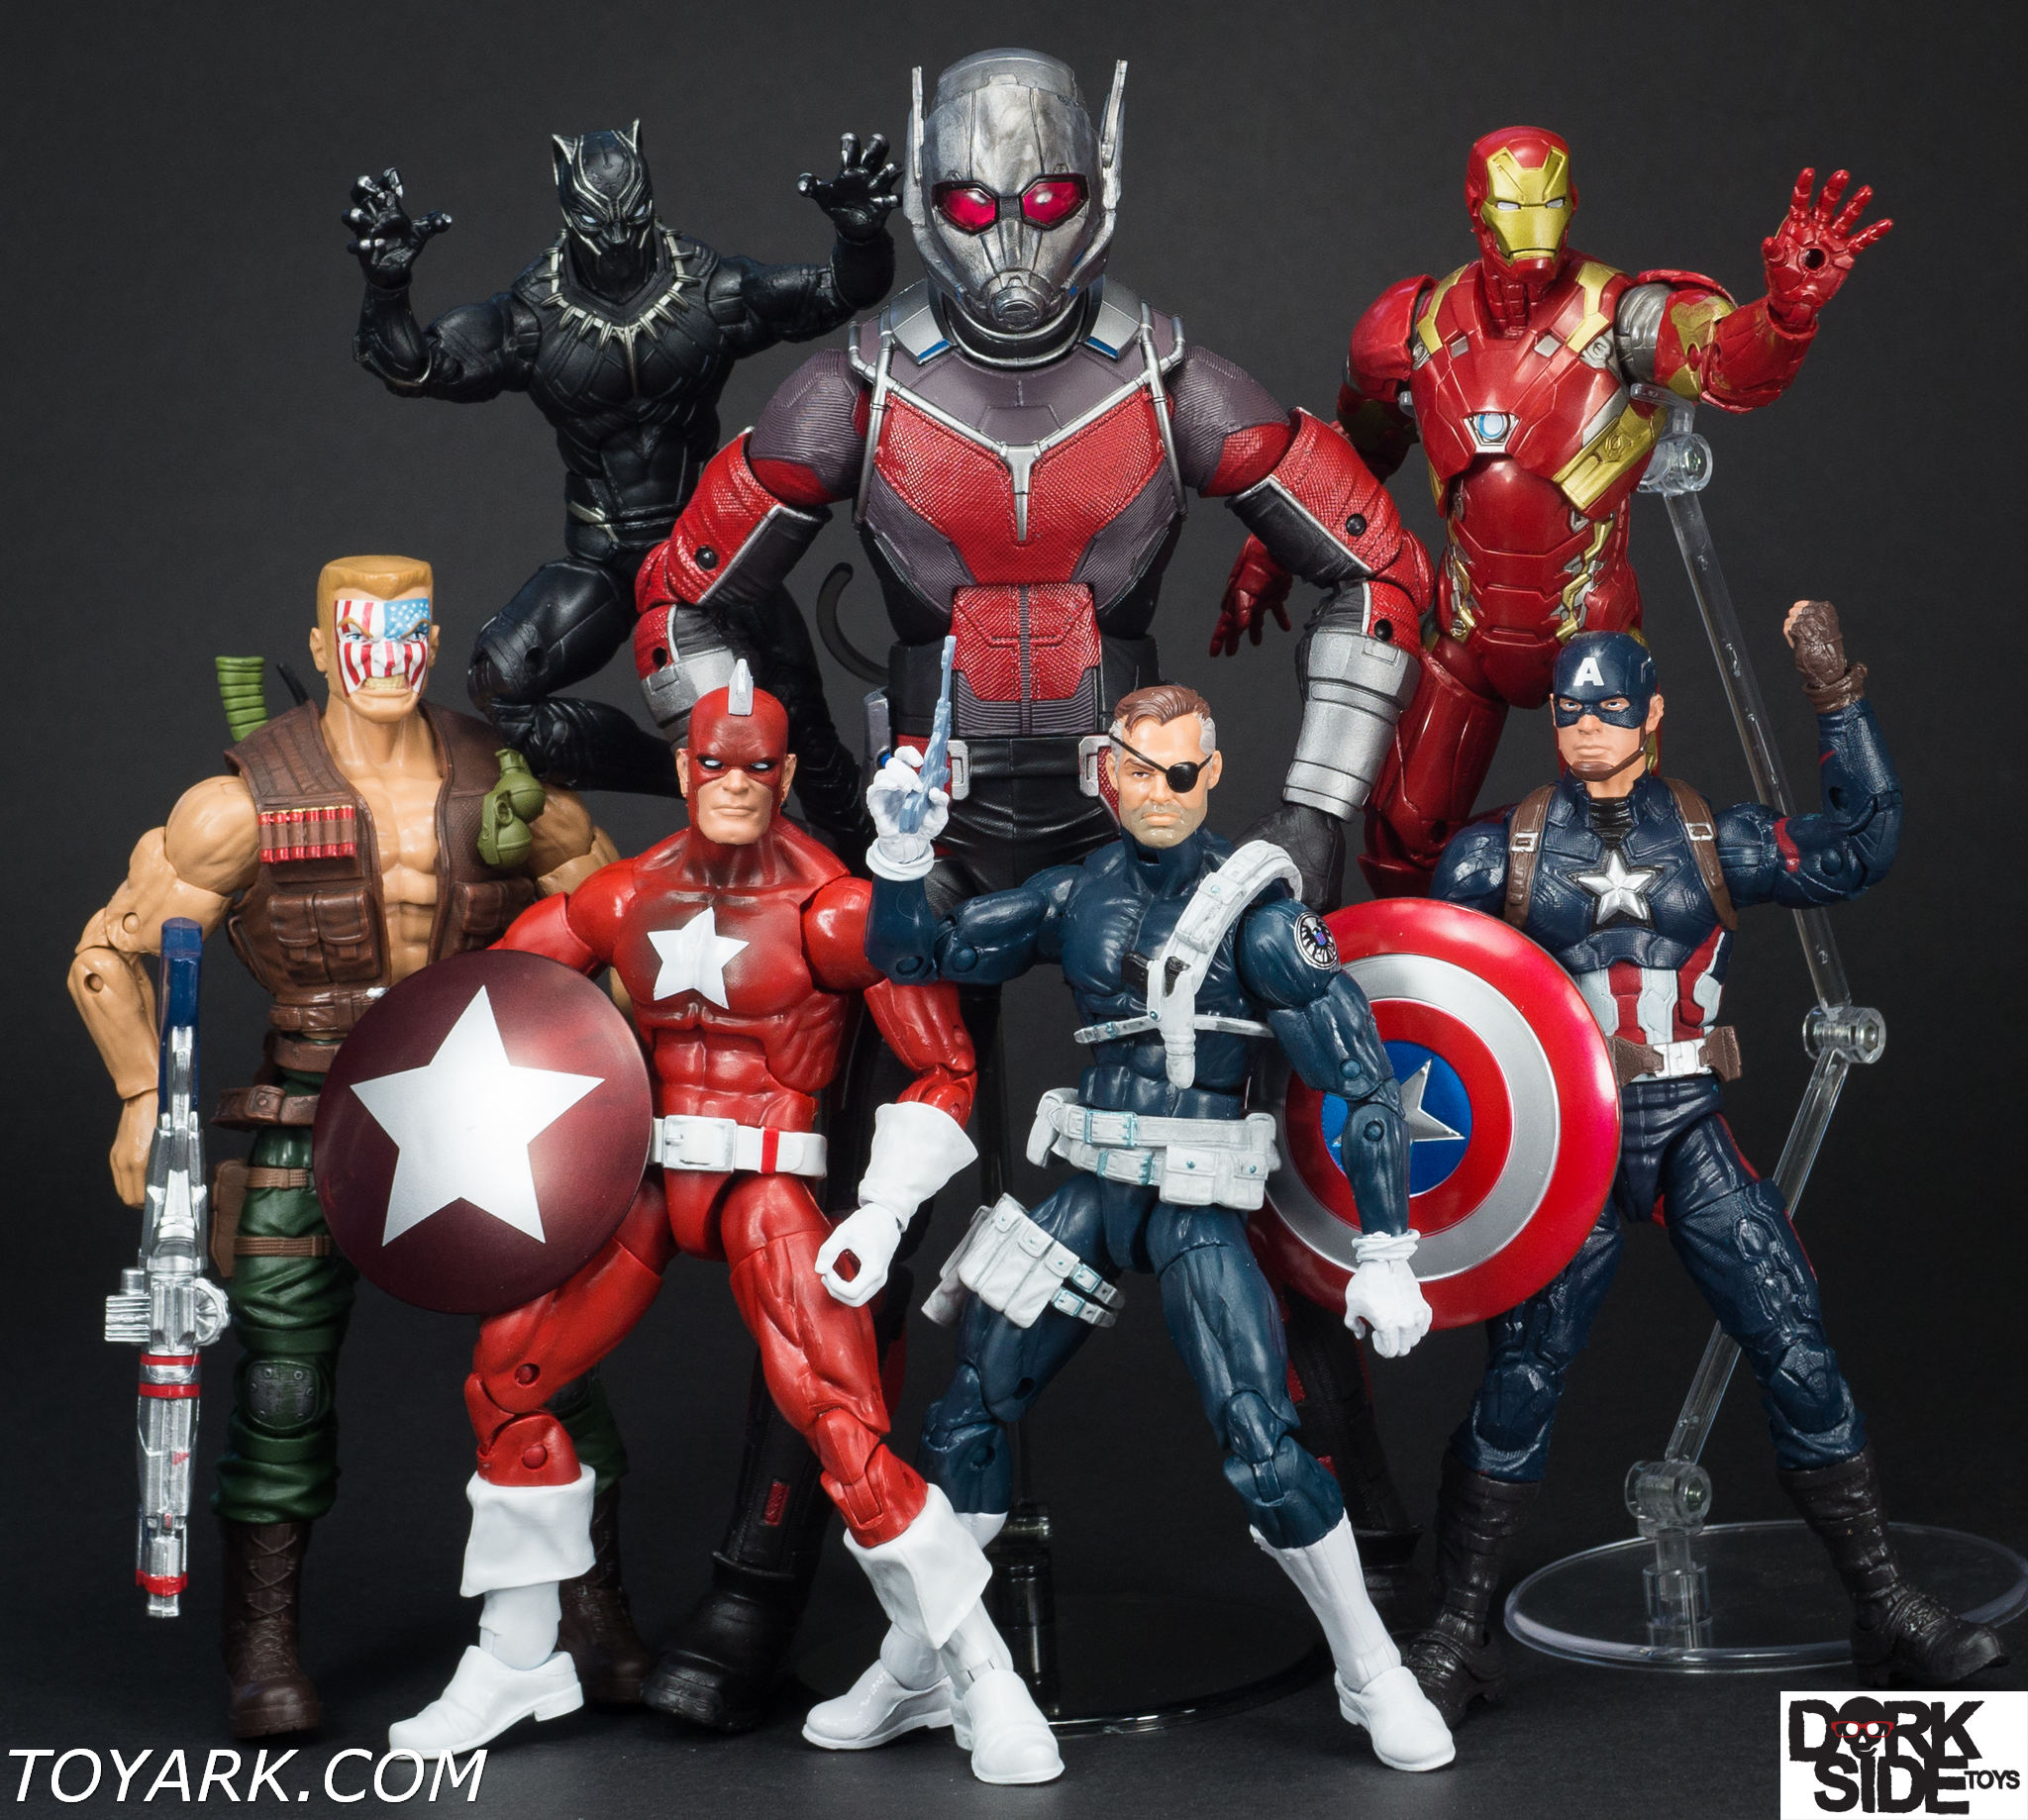 Captain-America-Civil-War-Giant-Man-BAF-Marvel-Legends-15.jpg